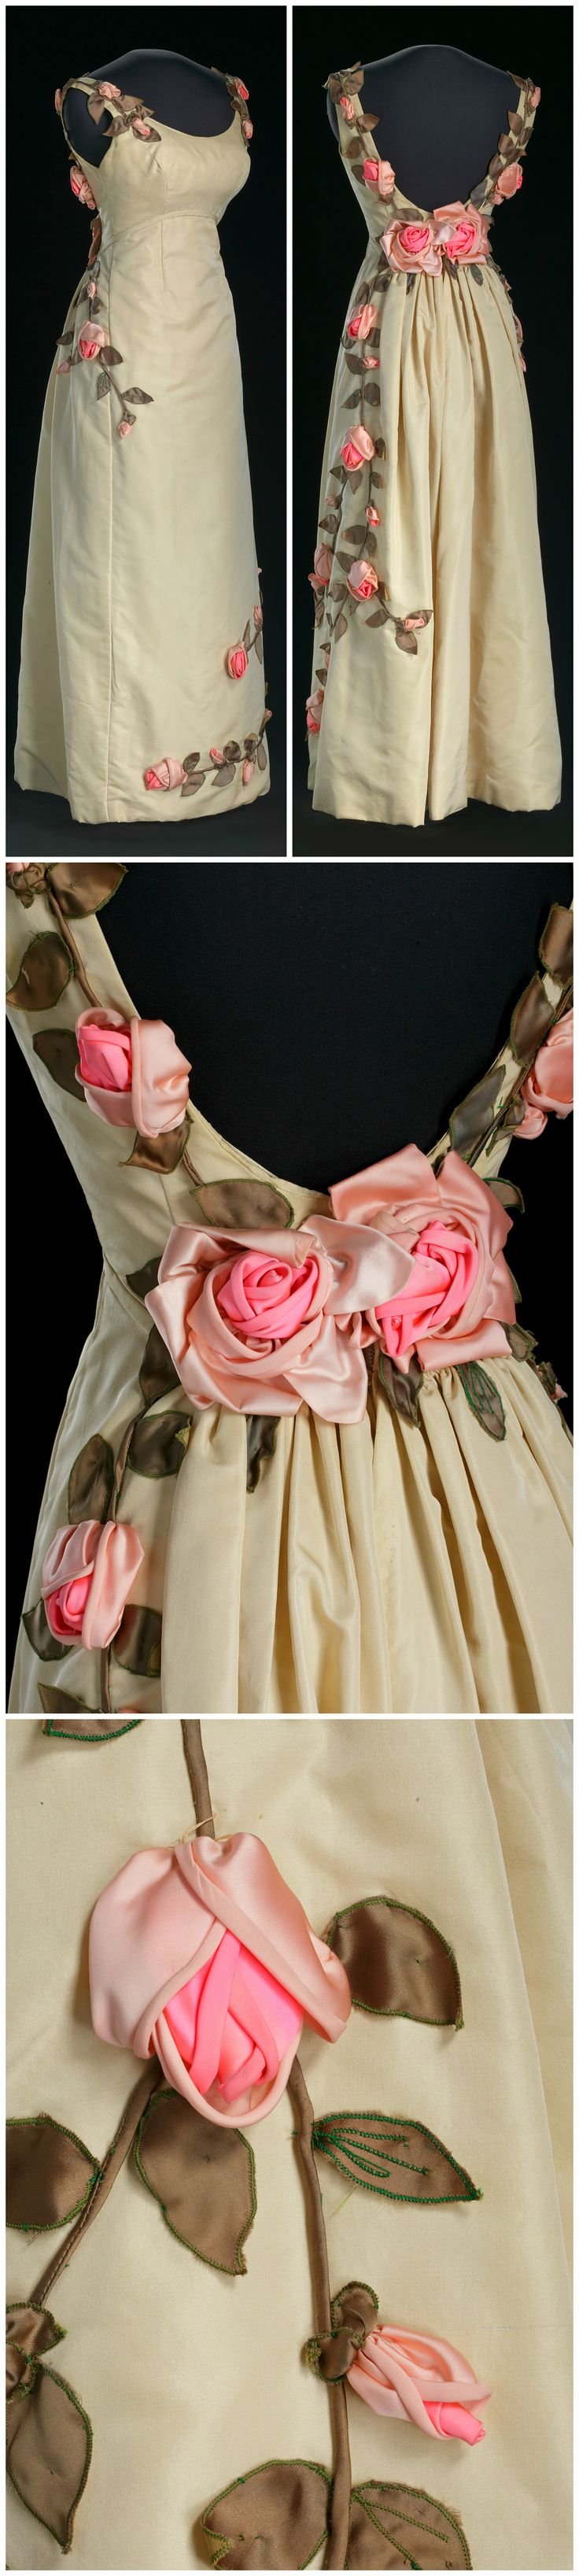 Debutante dress, designed by Ann Lowe, 1966-67. Worn by Barbara Baldwin Dowd. Silk, tulle, linen, metal, and elastic. Collection of the Smithsonian National Museum of African American History and Culture.